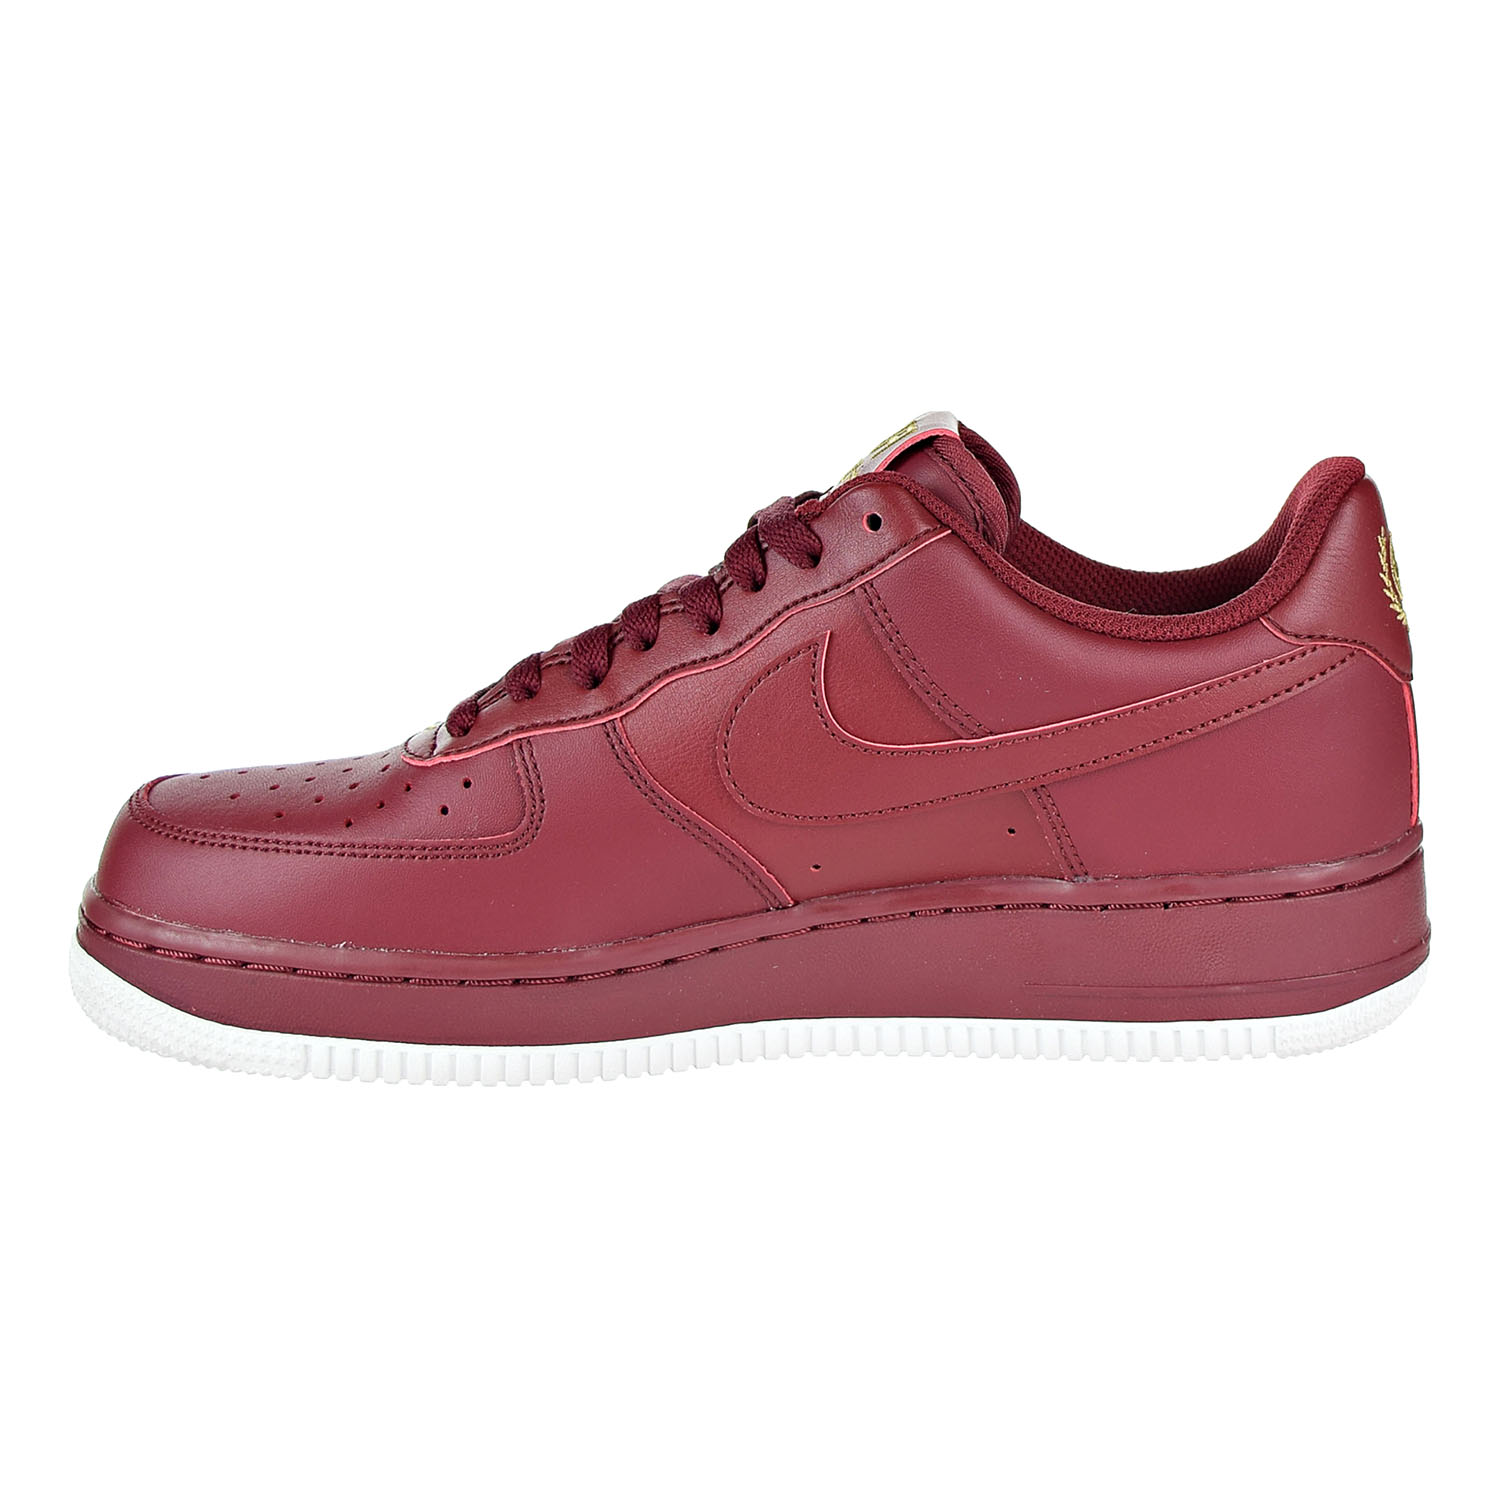 Nike Air Force 1 '07 Men shoes Team Red/Summit White aa4083-603